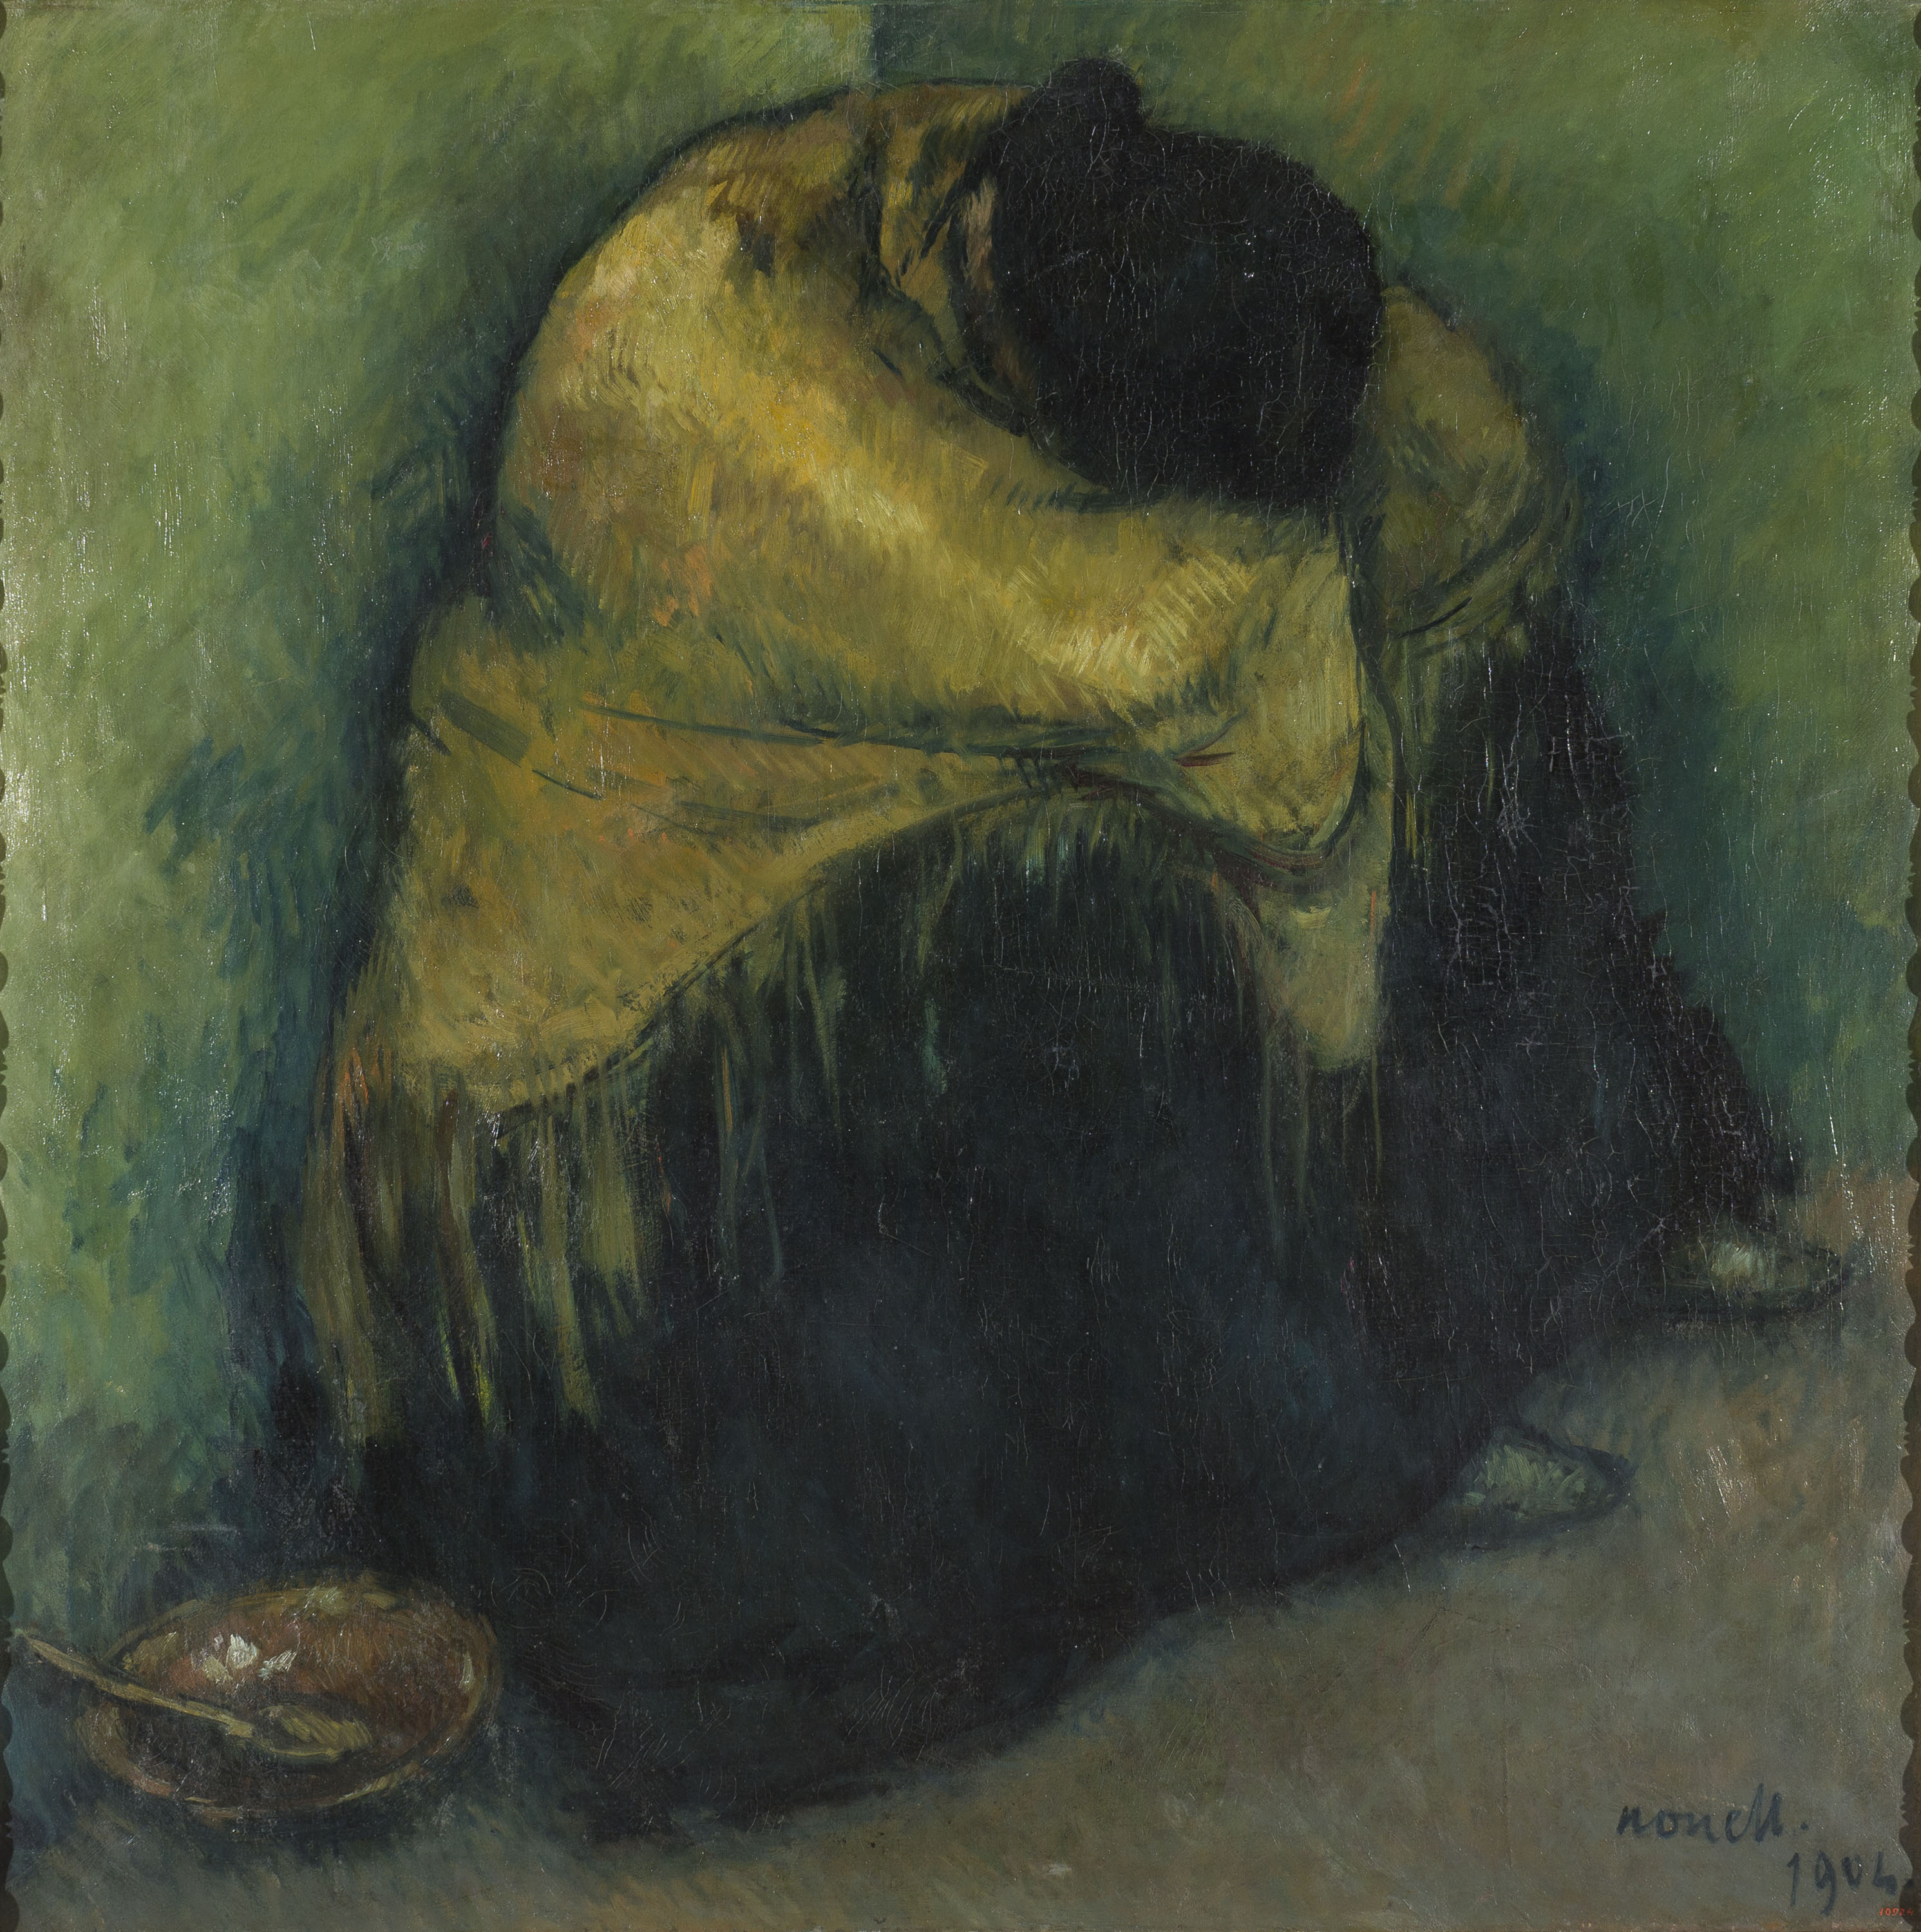 Isidre Nonell - Repòs - Barcelona, 1903-1904